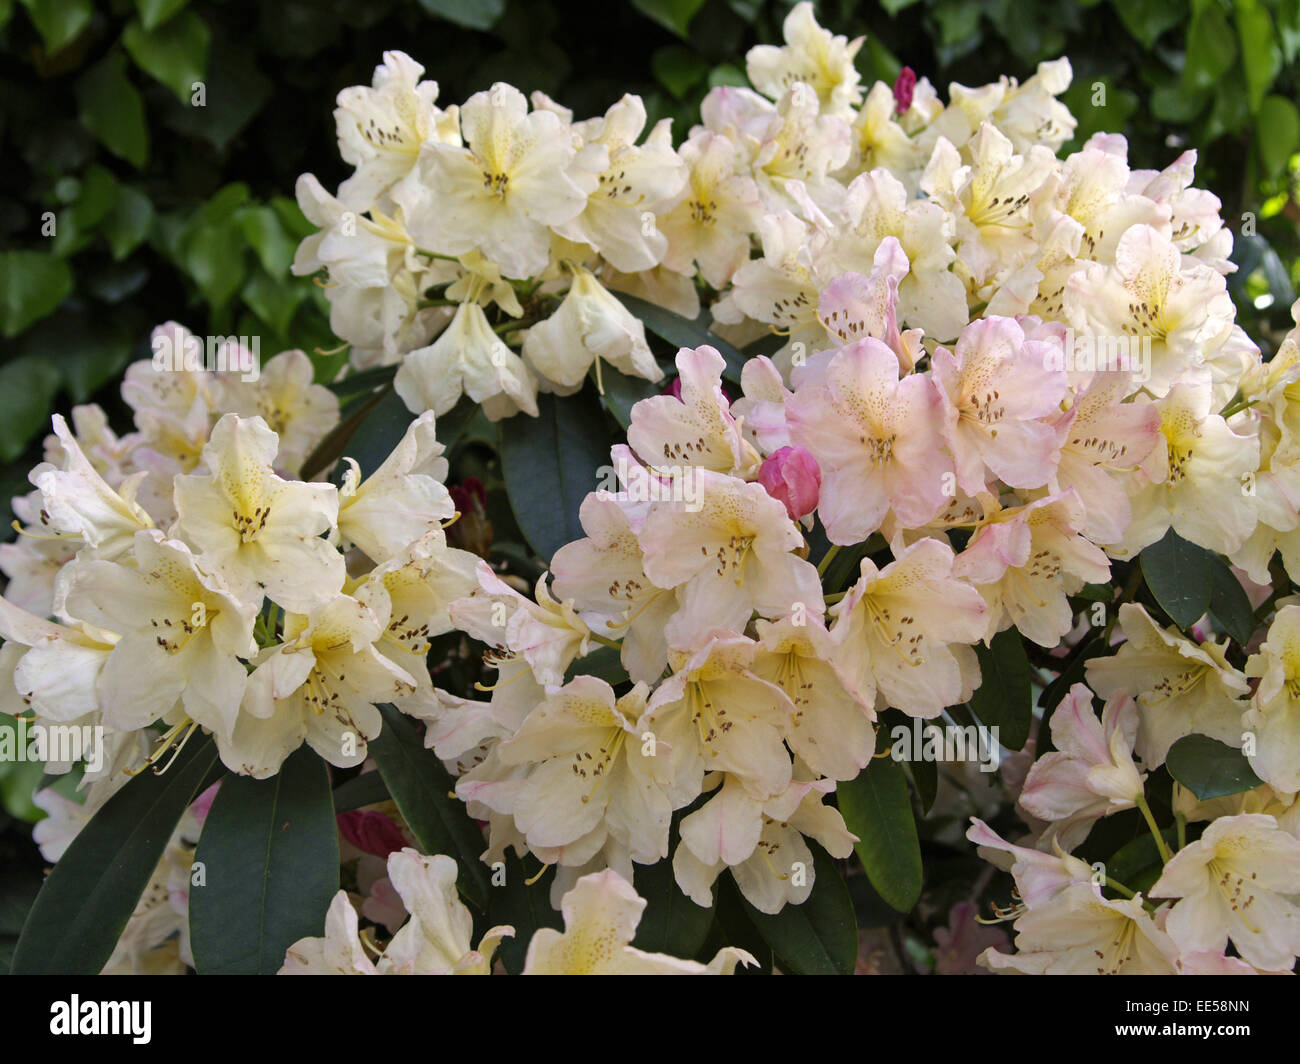 Rhododendron, Rhododendron catawbiense, Detail, Blueten, rosa, Natur, Botanik, Flora, Pflanze, bluehen, Giftpflanze, - Stock Image